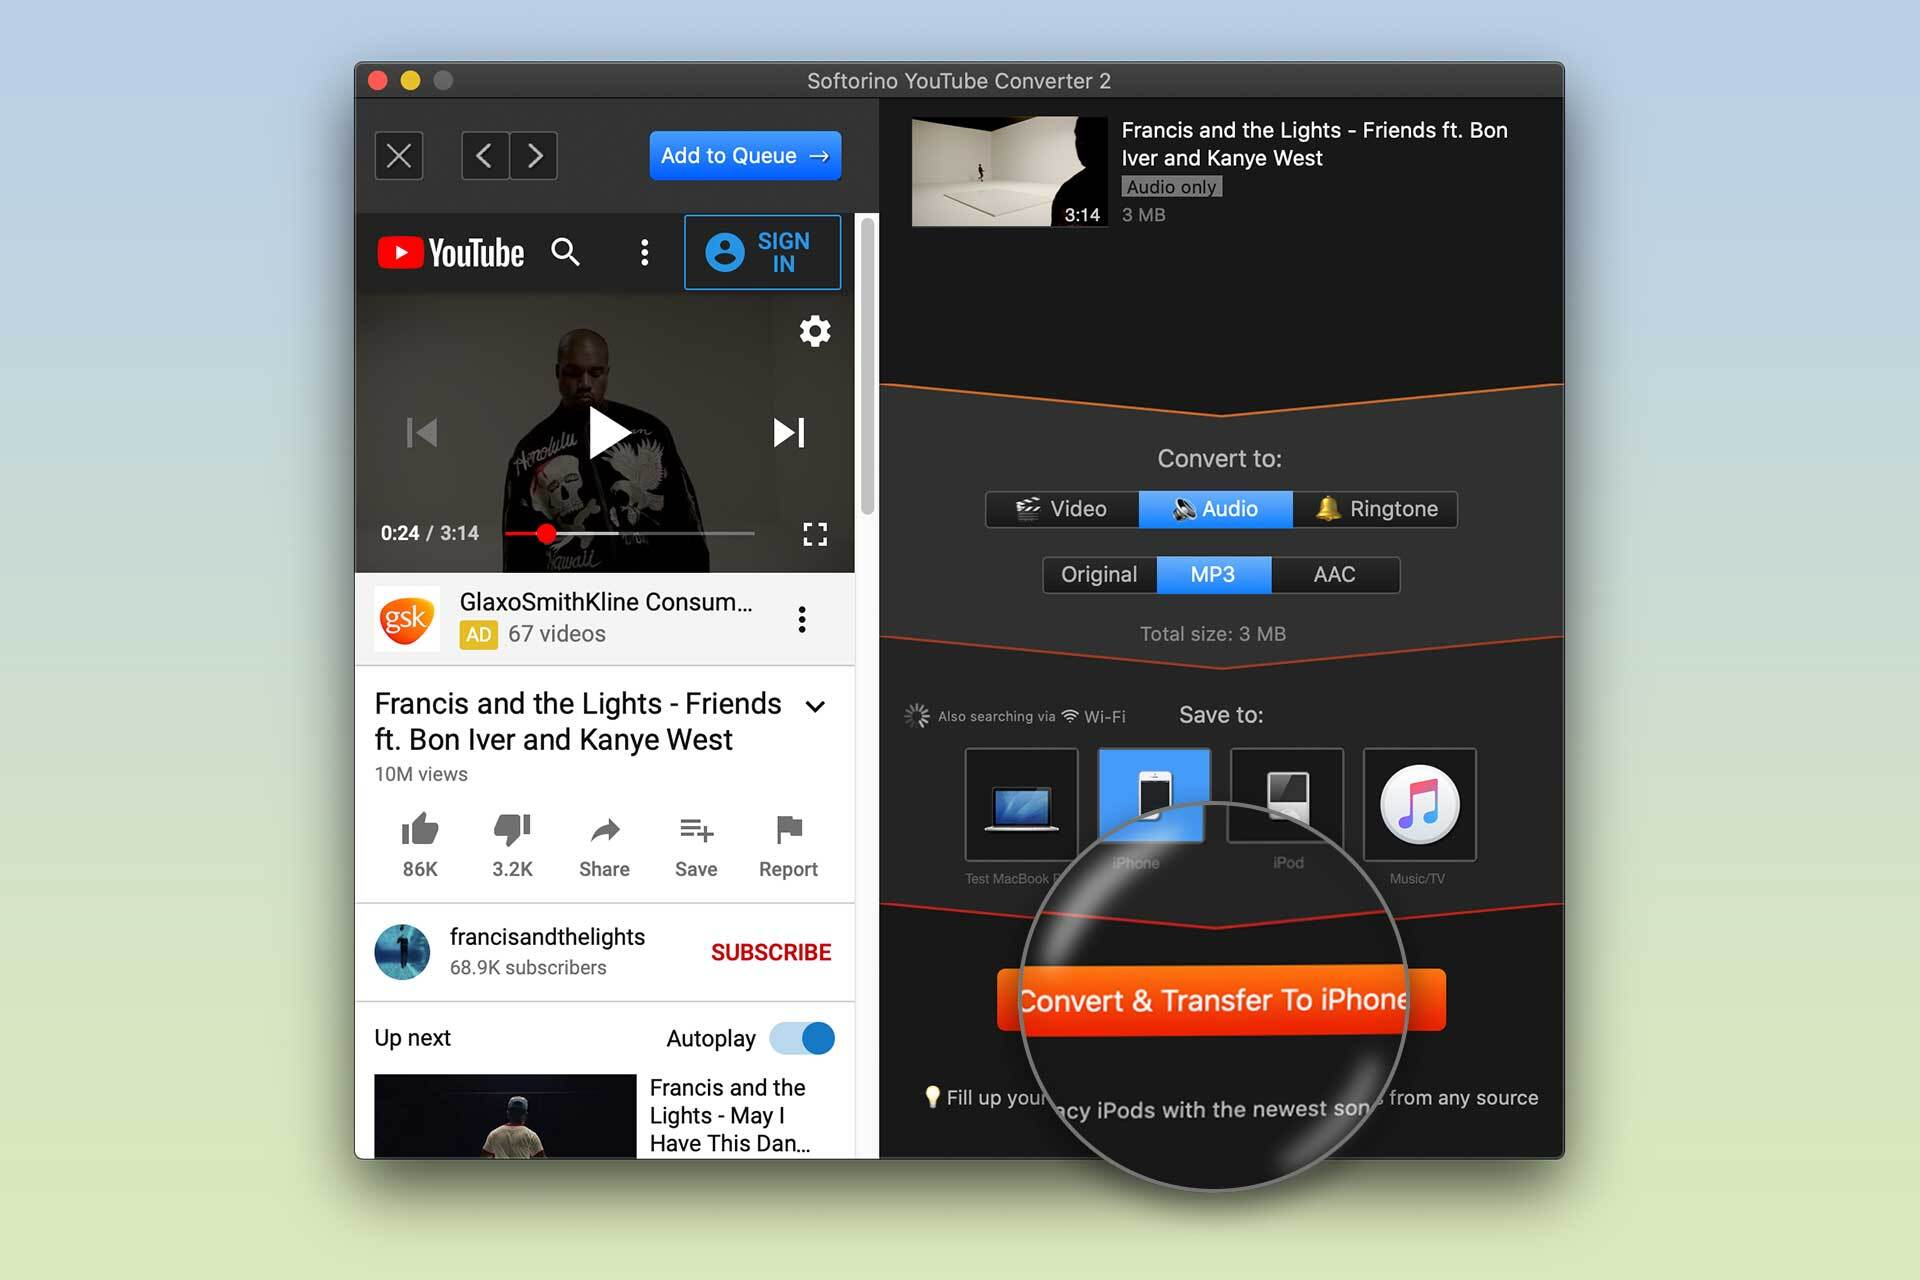 Ht Syc2 Build A Free Music Library With Youtube Converter 4